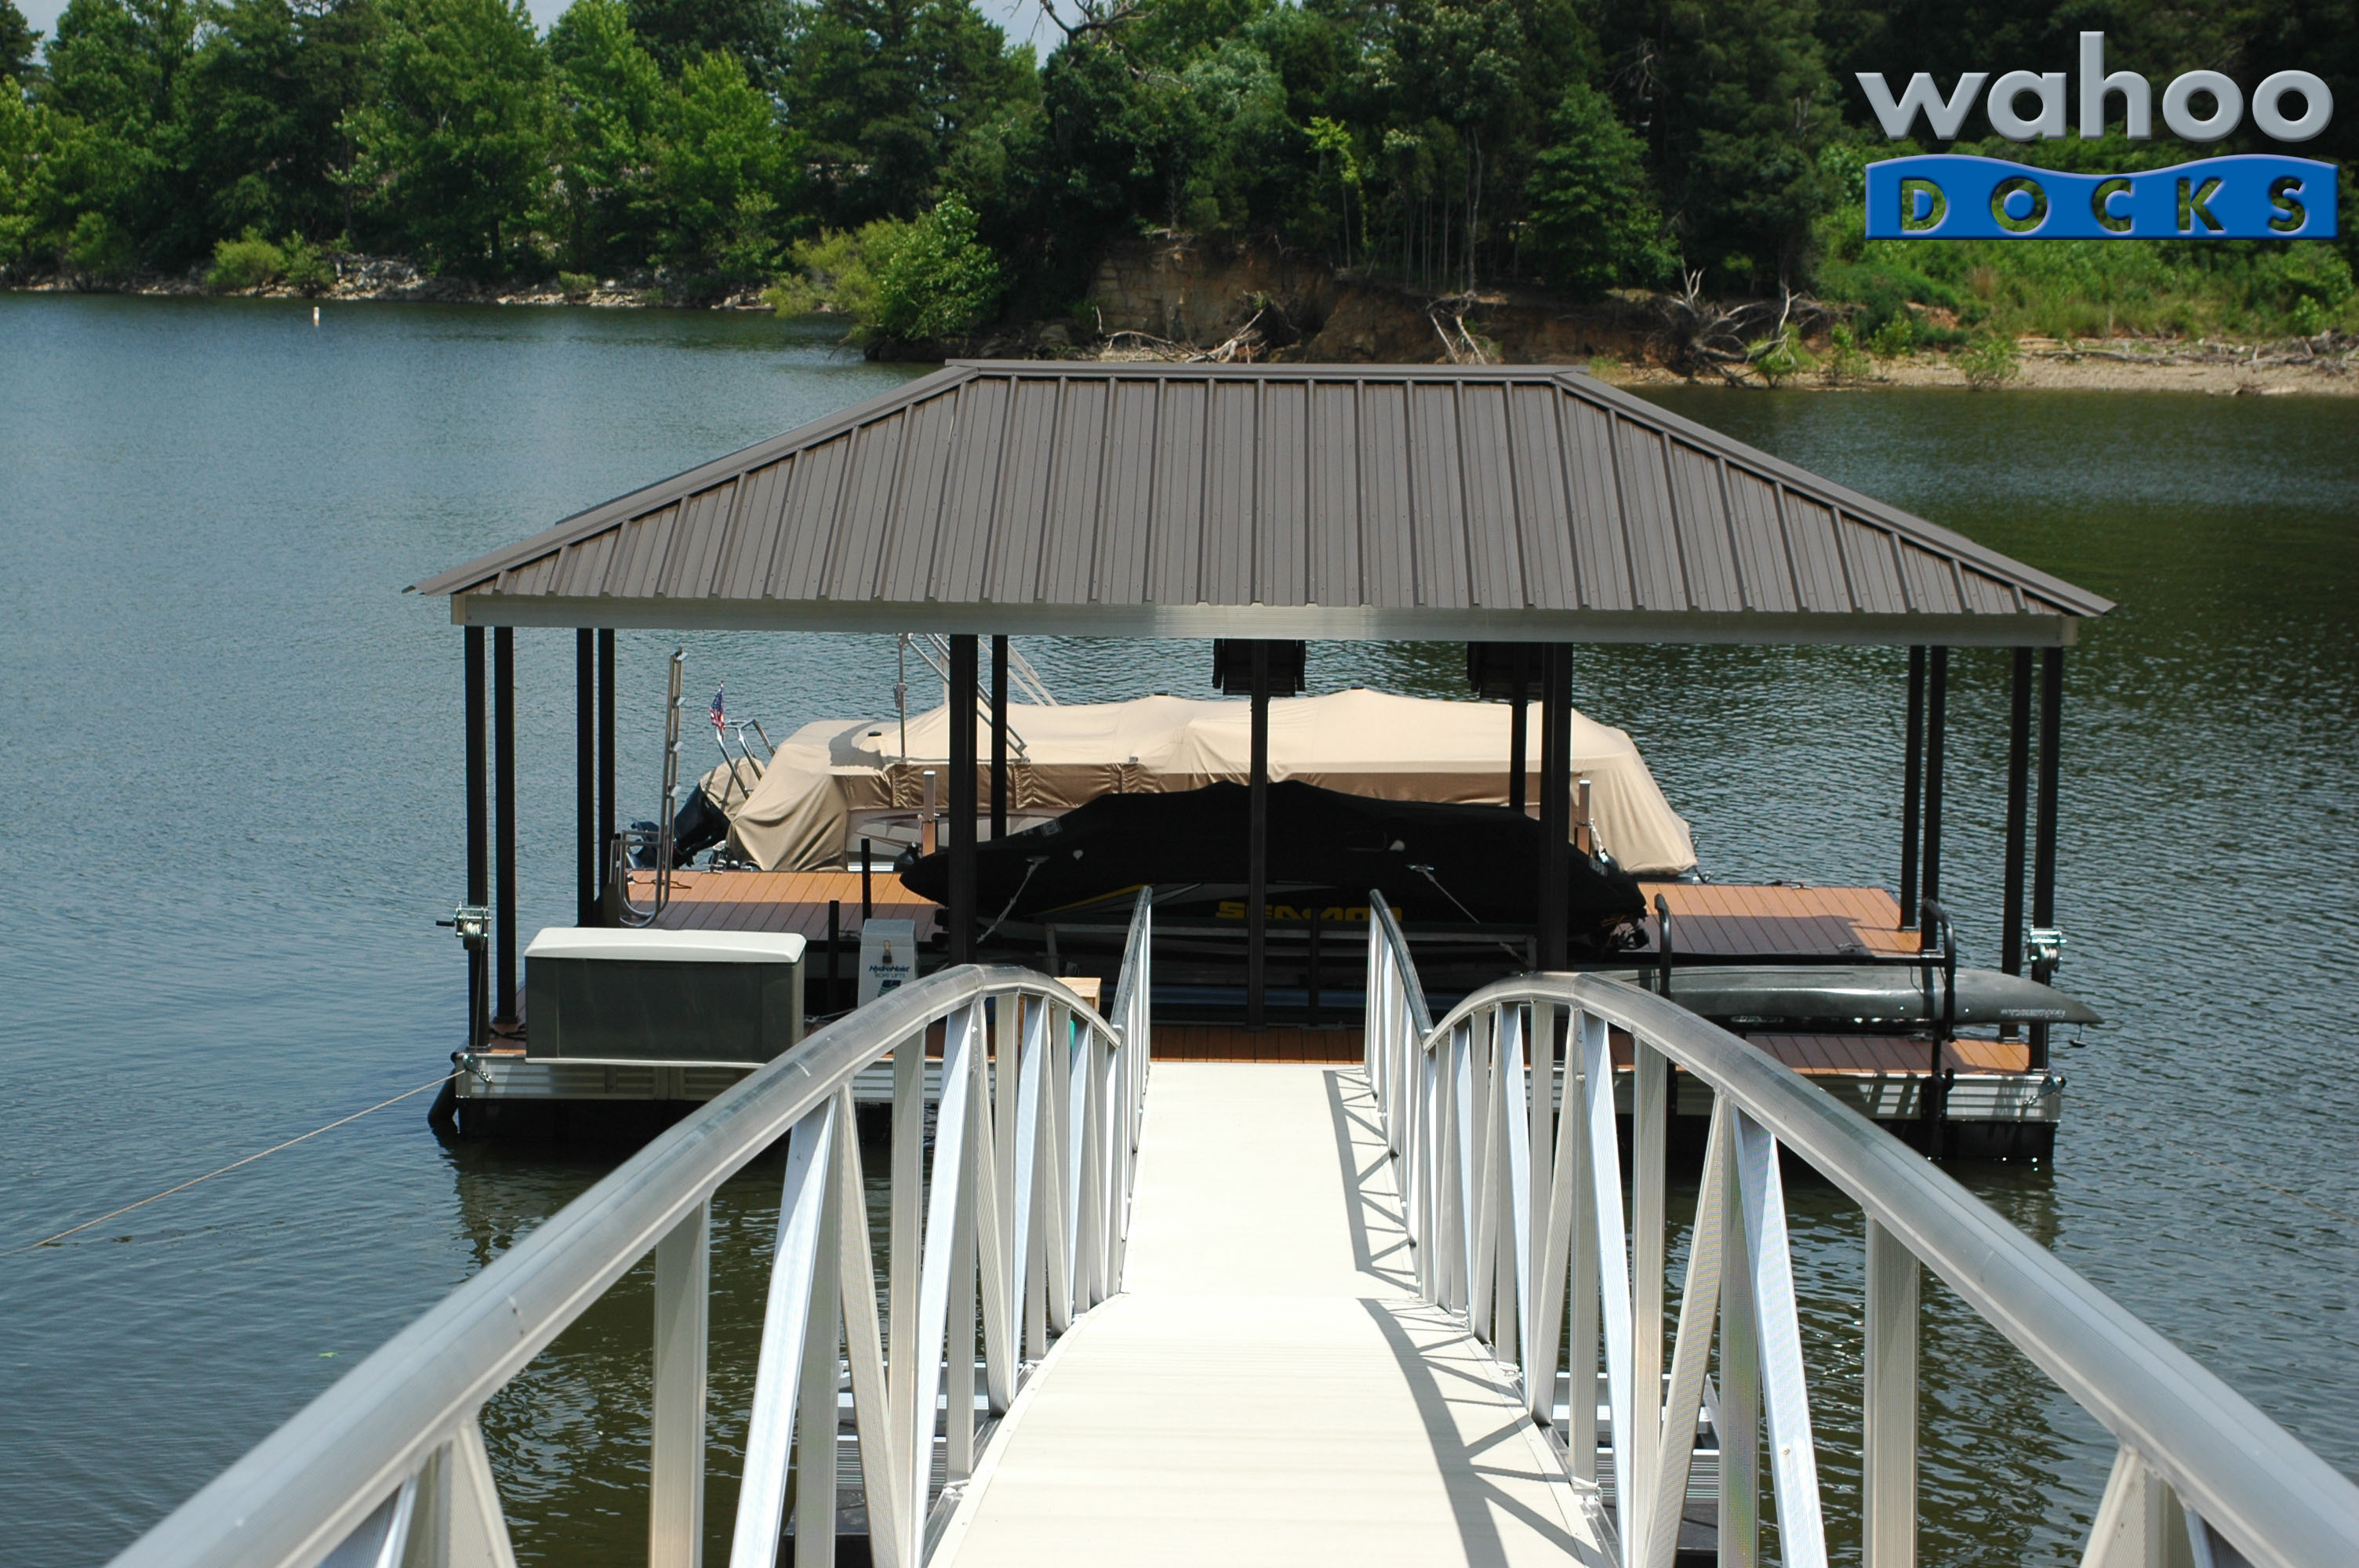 Wahoo-Dock-Garland-June-2013-2